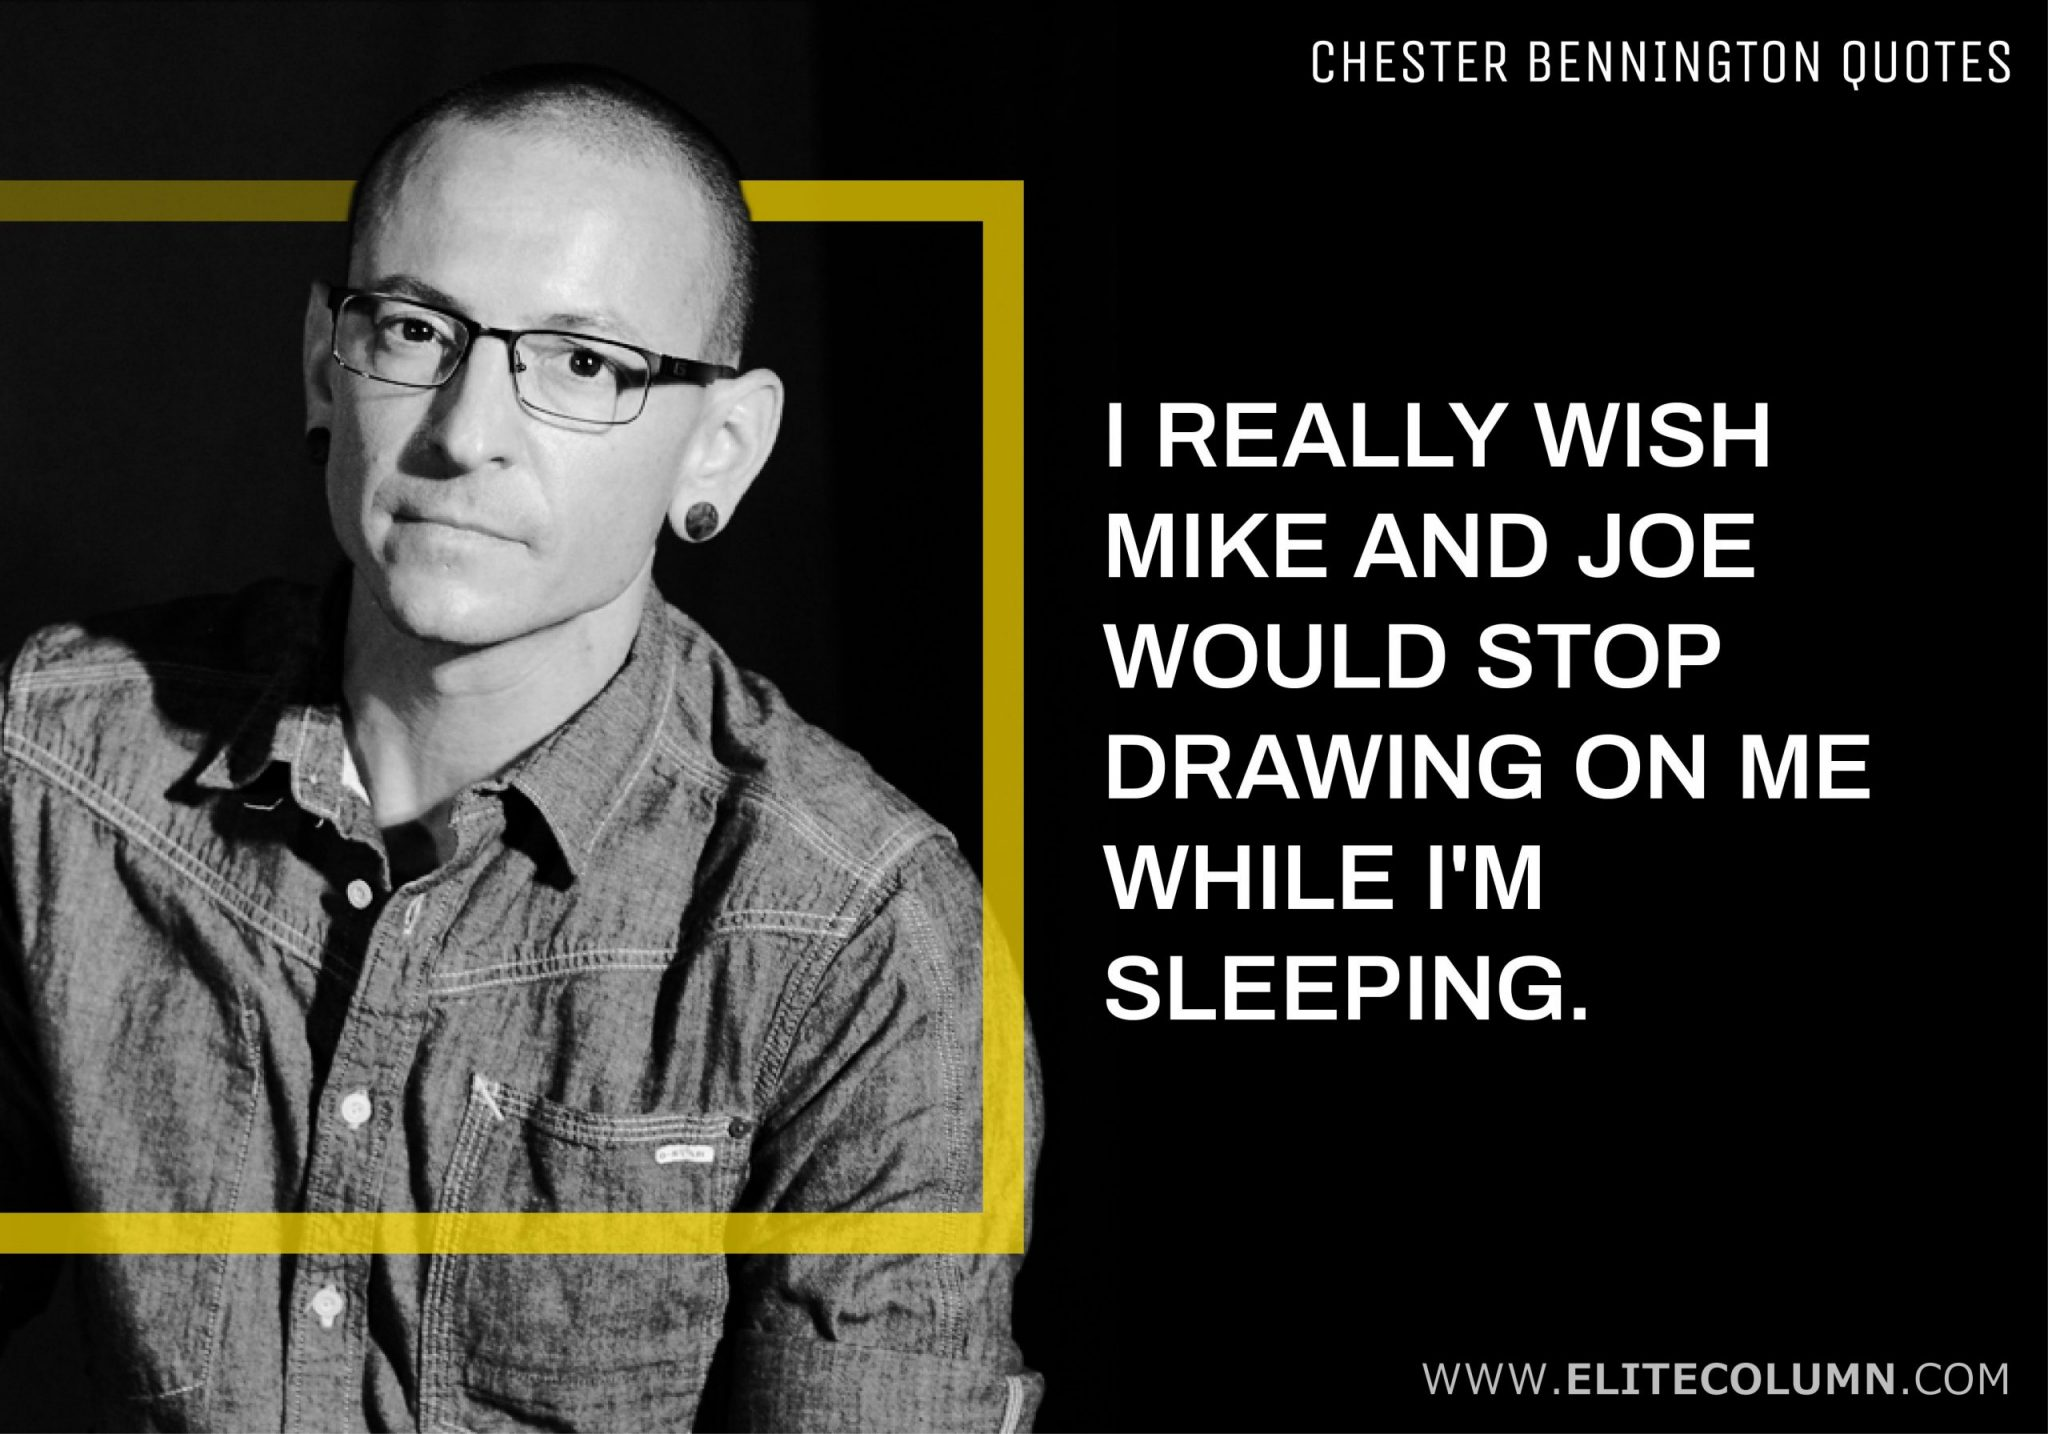 Chester Bennington Quotes (3)